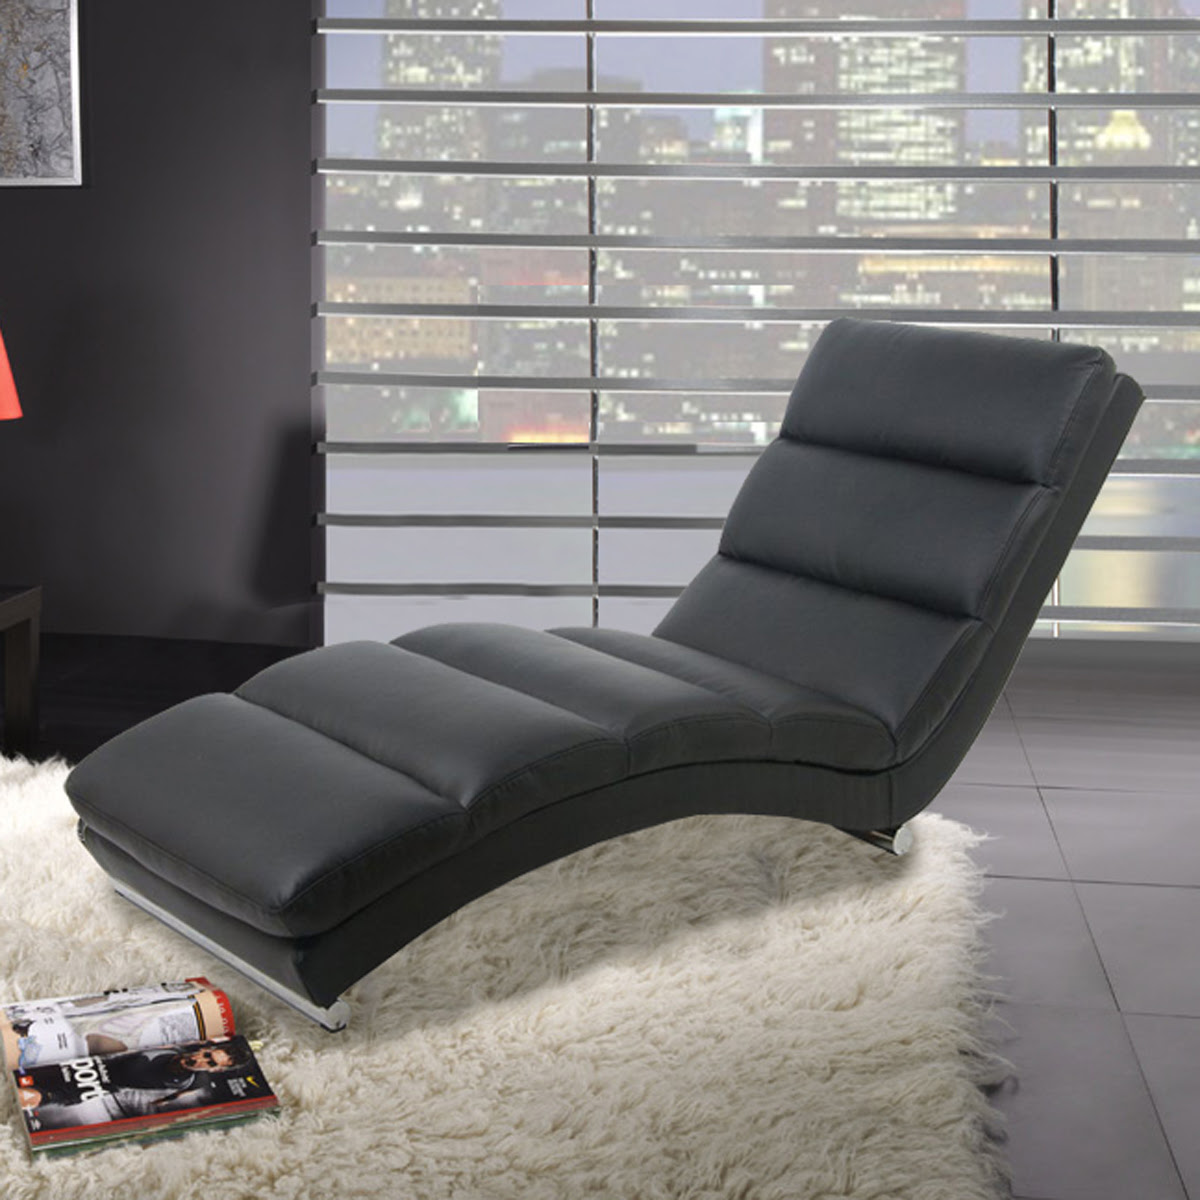 Relaxliege Holiday Sofa Liege Chaiselongue bequeme Polster ...